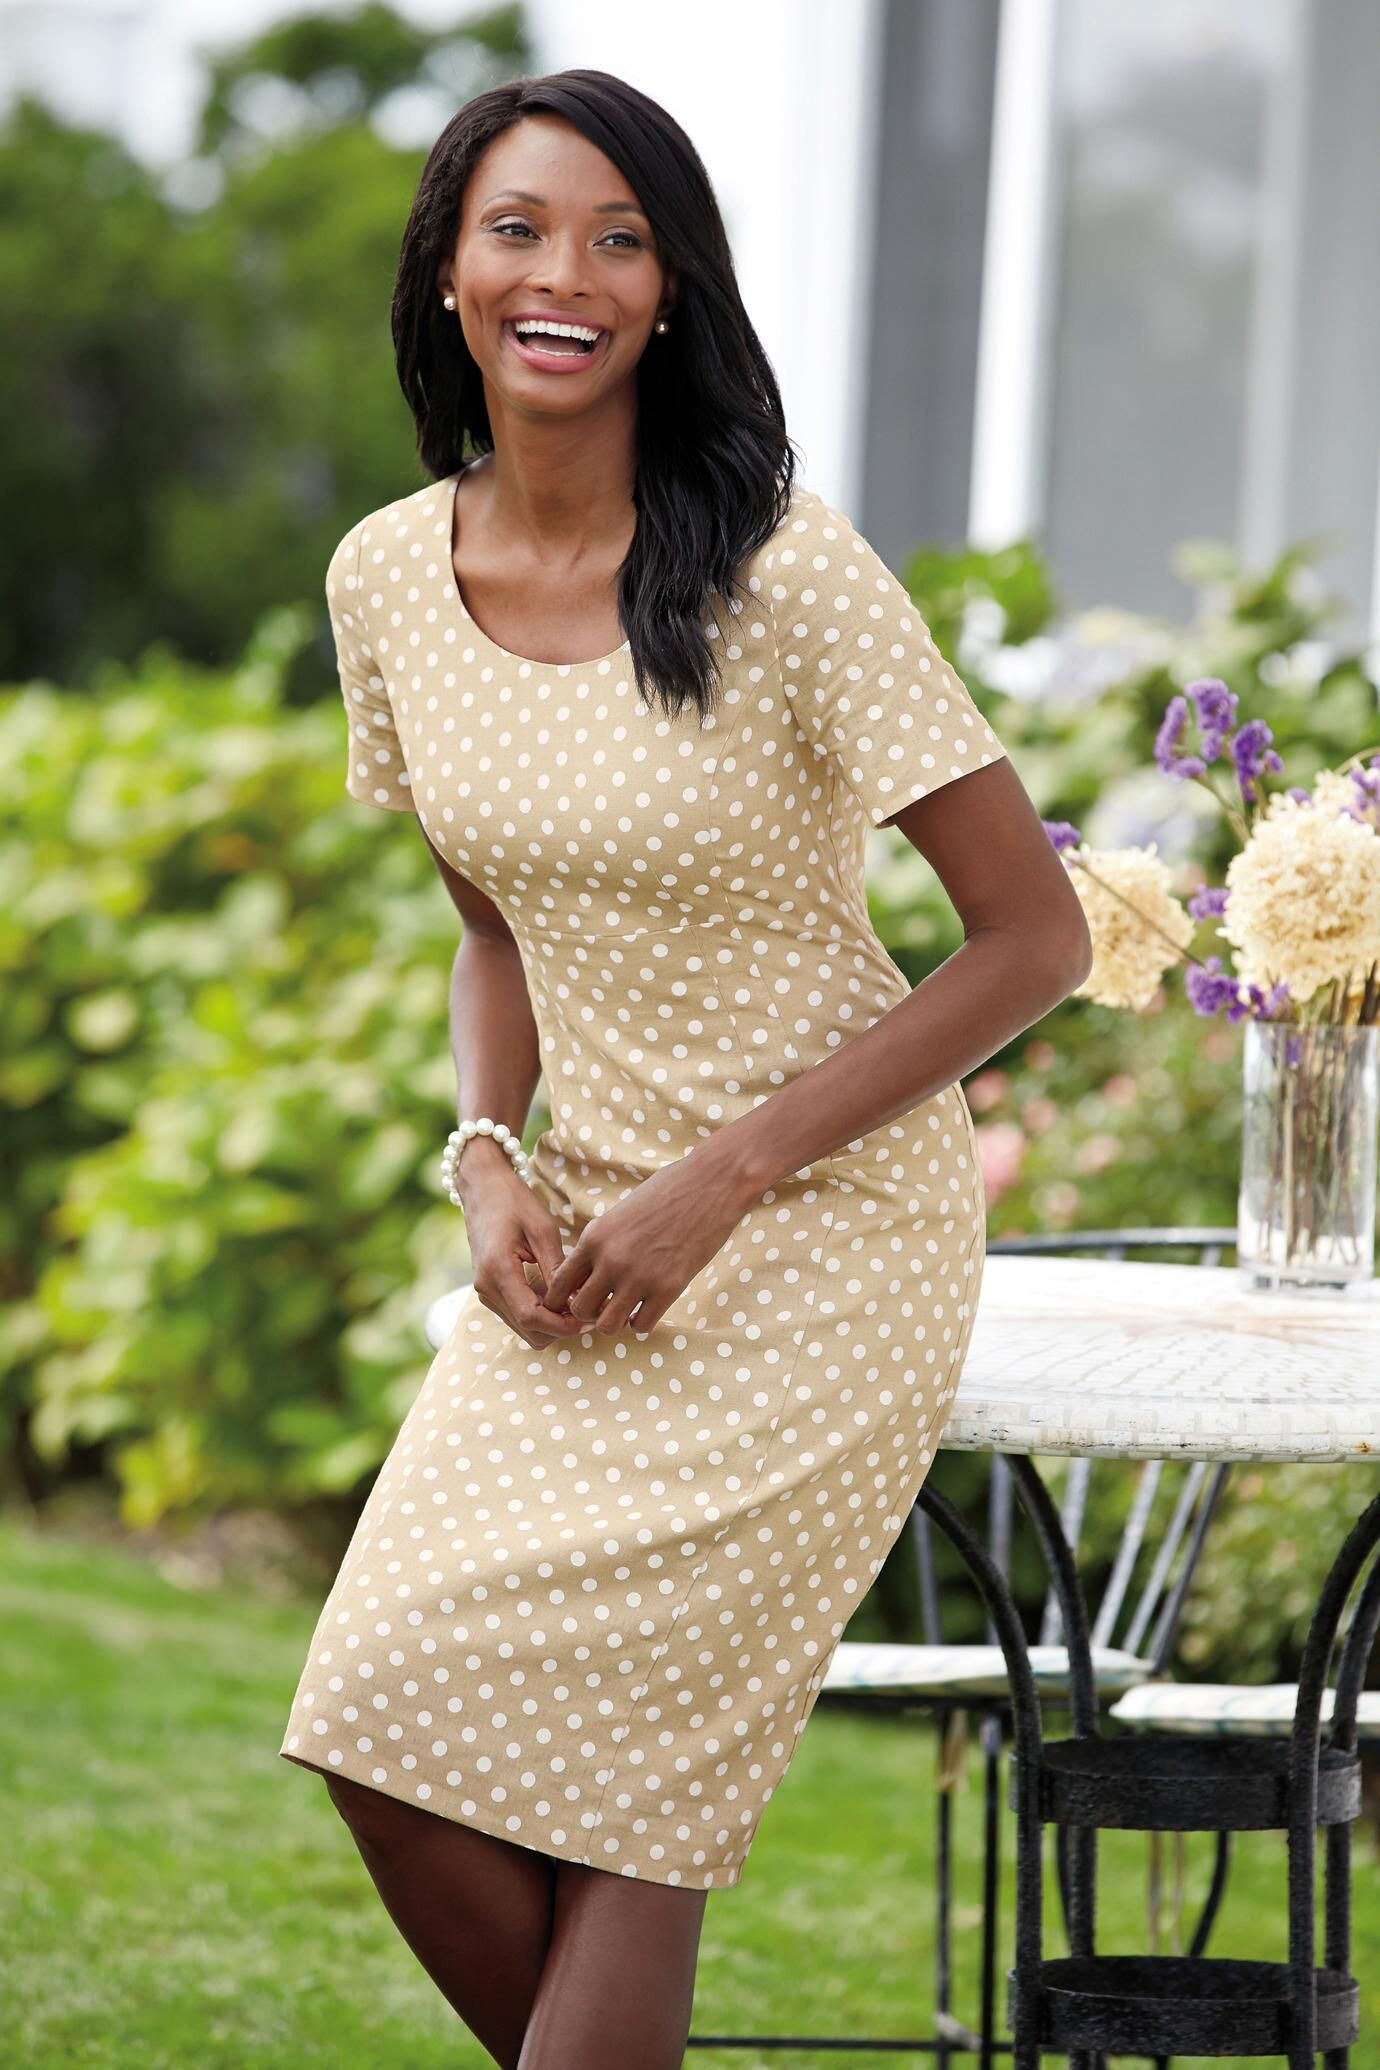 e72c3510 Perfect Fit Linen Sheath Dress: Classic Women's Clothing from  #ChadwicksofBoston $29.99 - $34.99